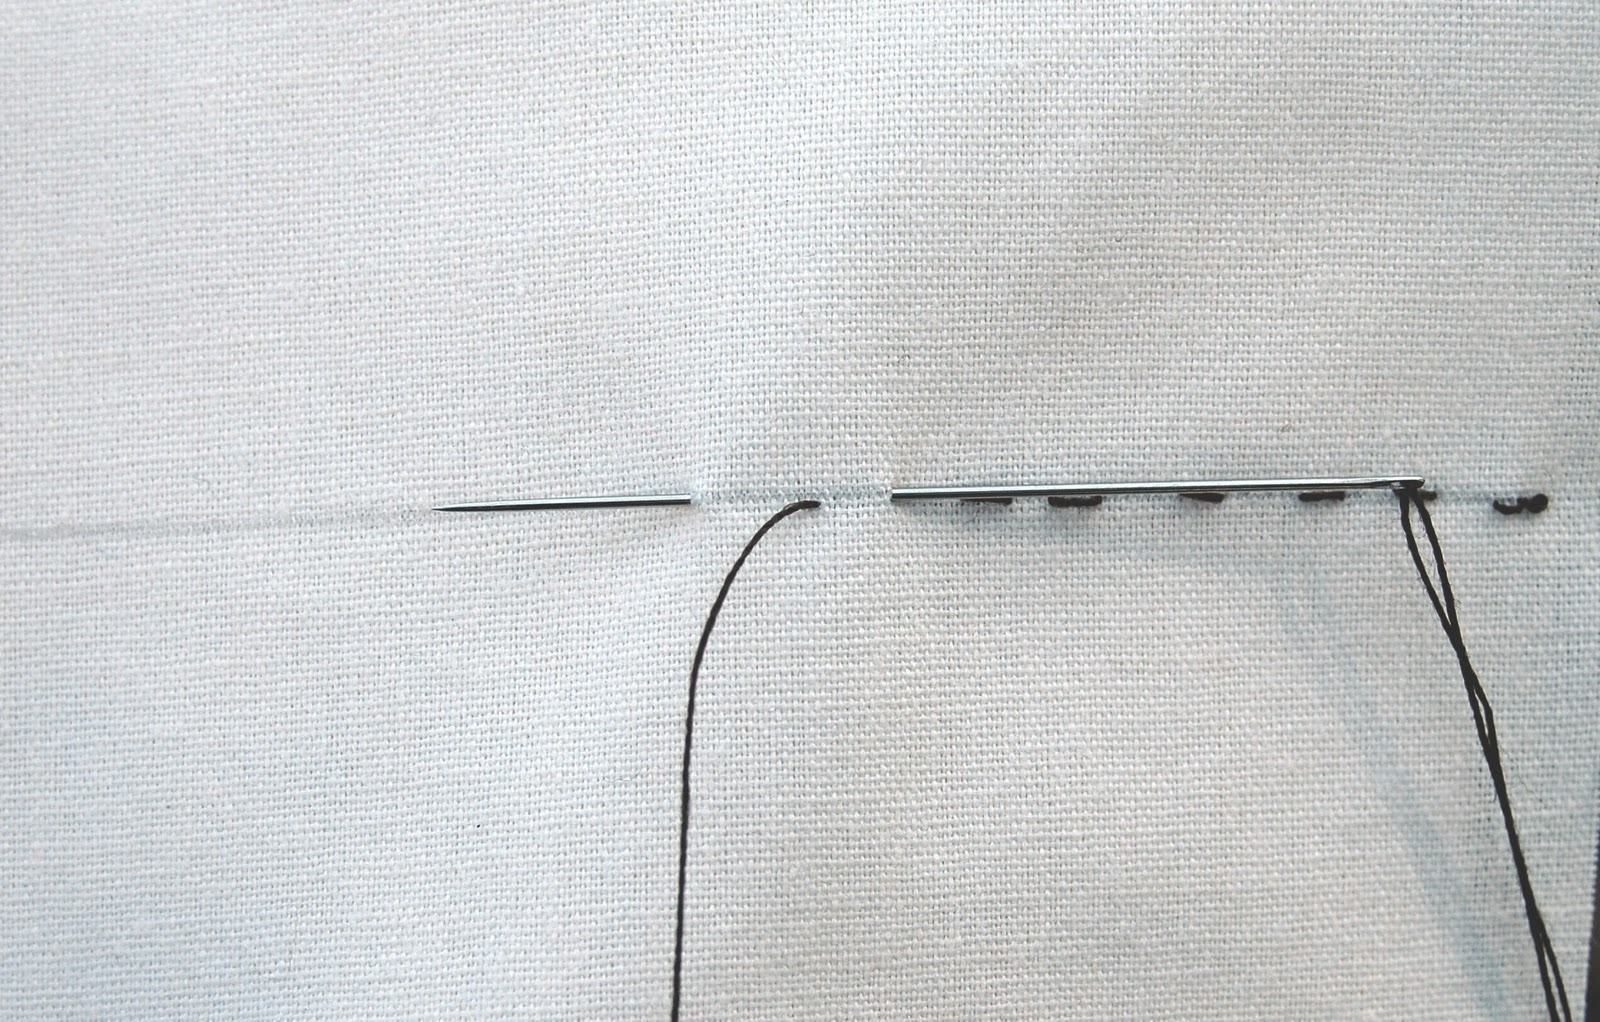 Miss Sews It All Hand Sewing The Basic Stitches